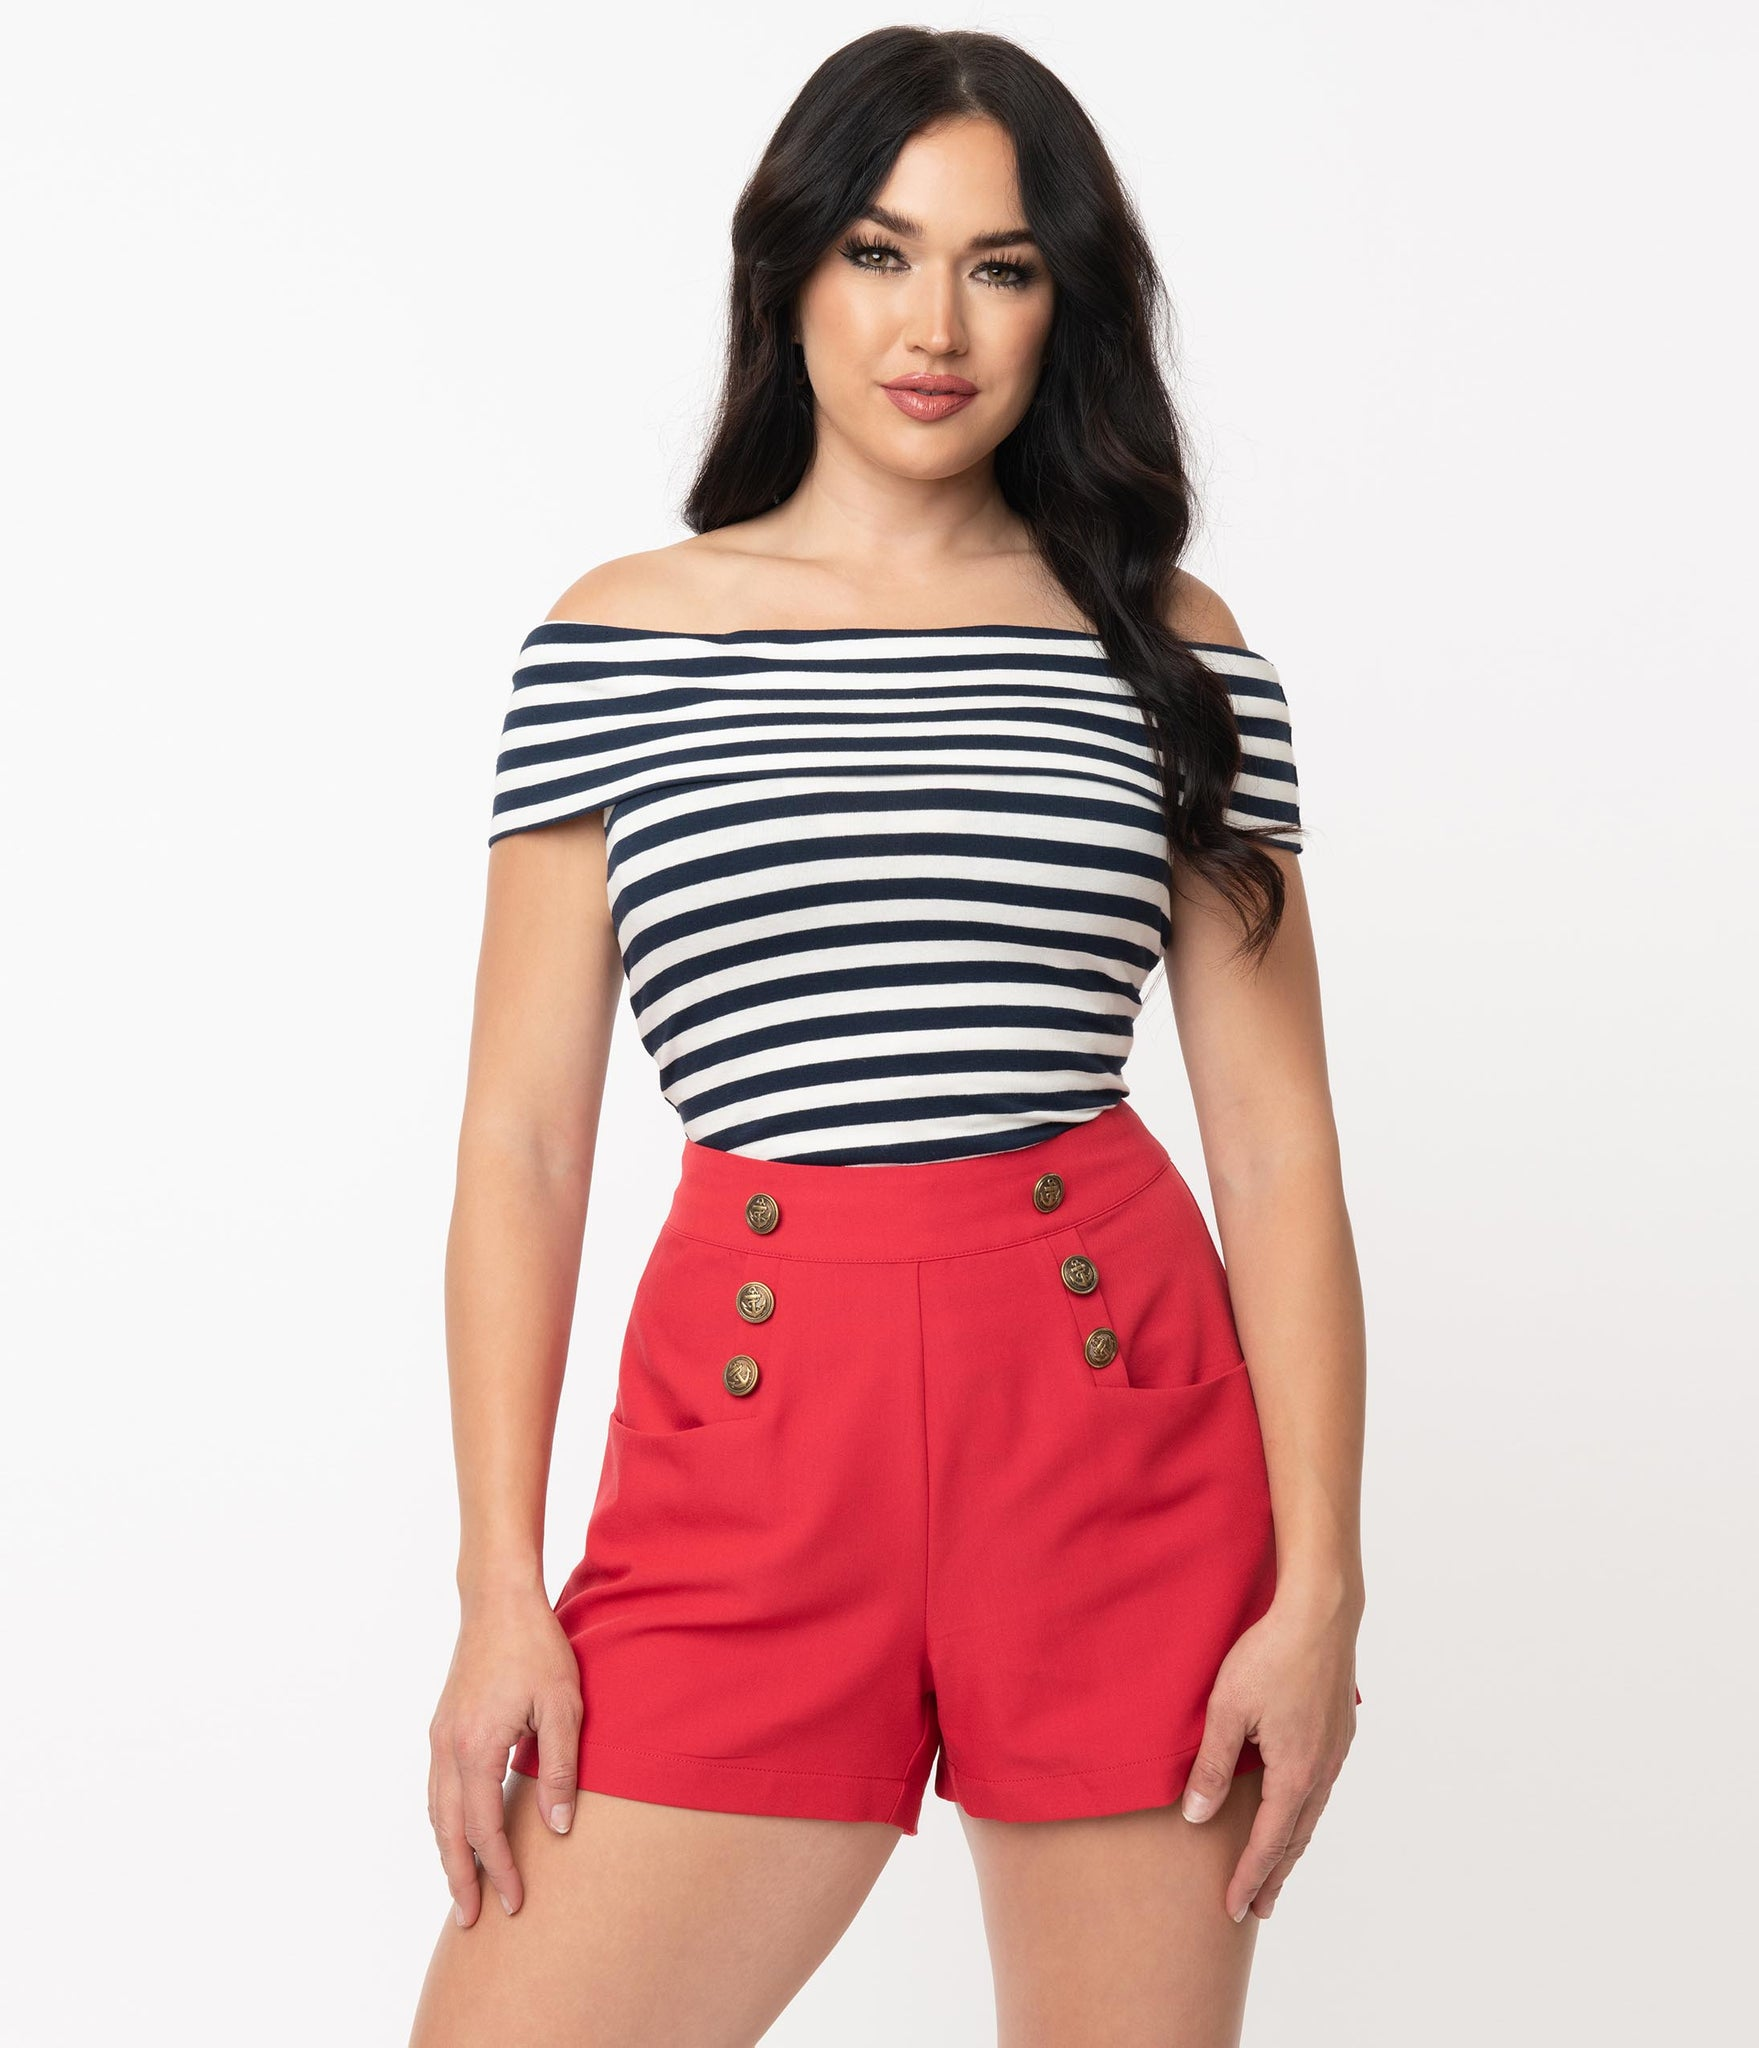 1940s Style Red High Waist Sailor Debbie Shorts